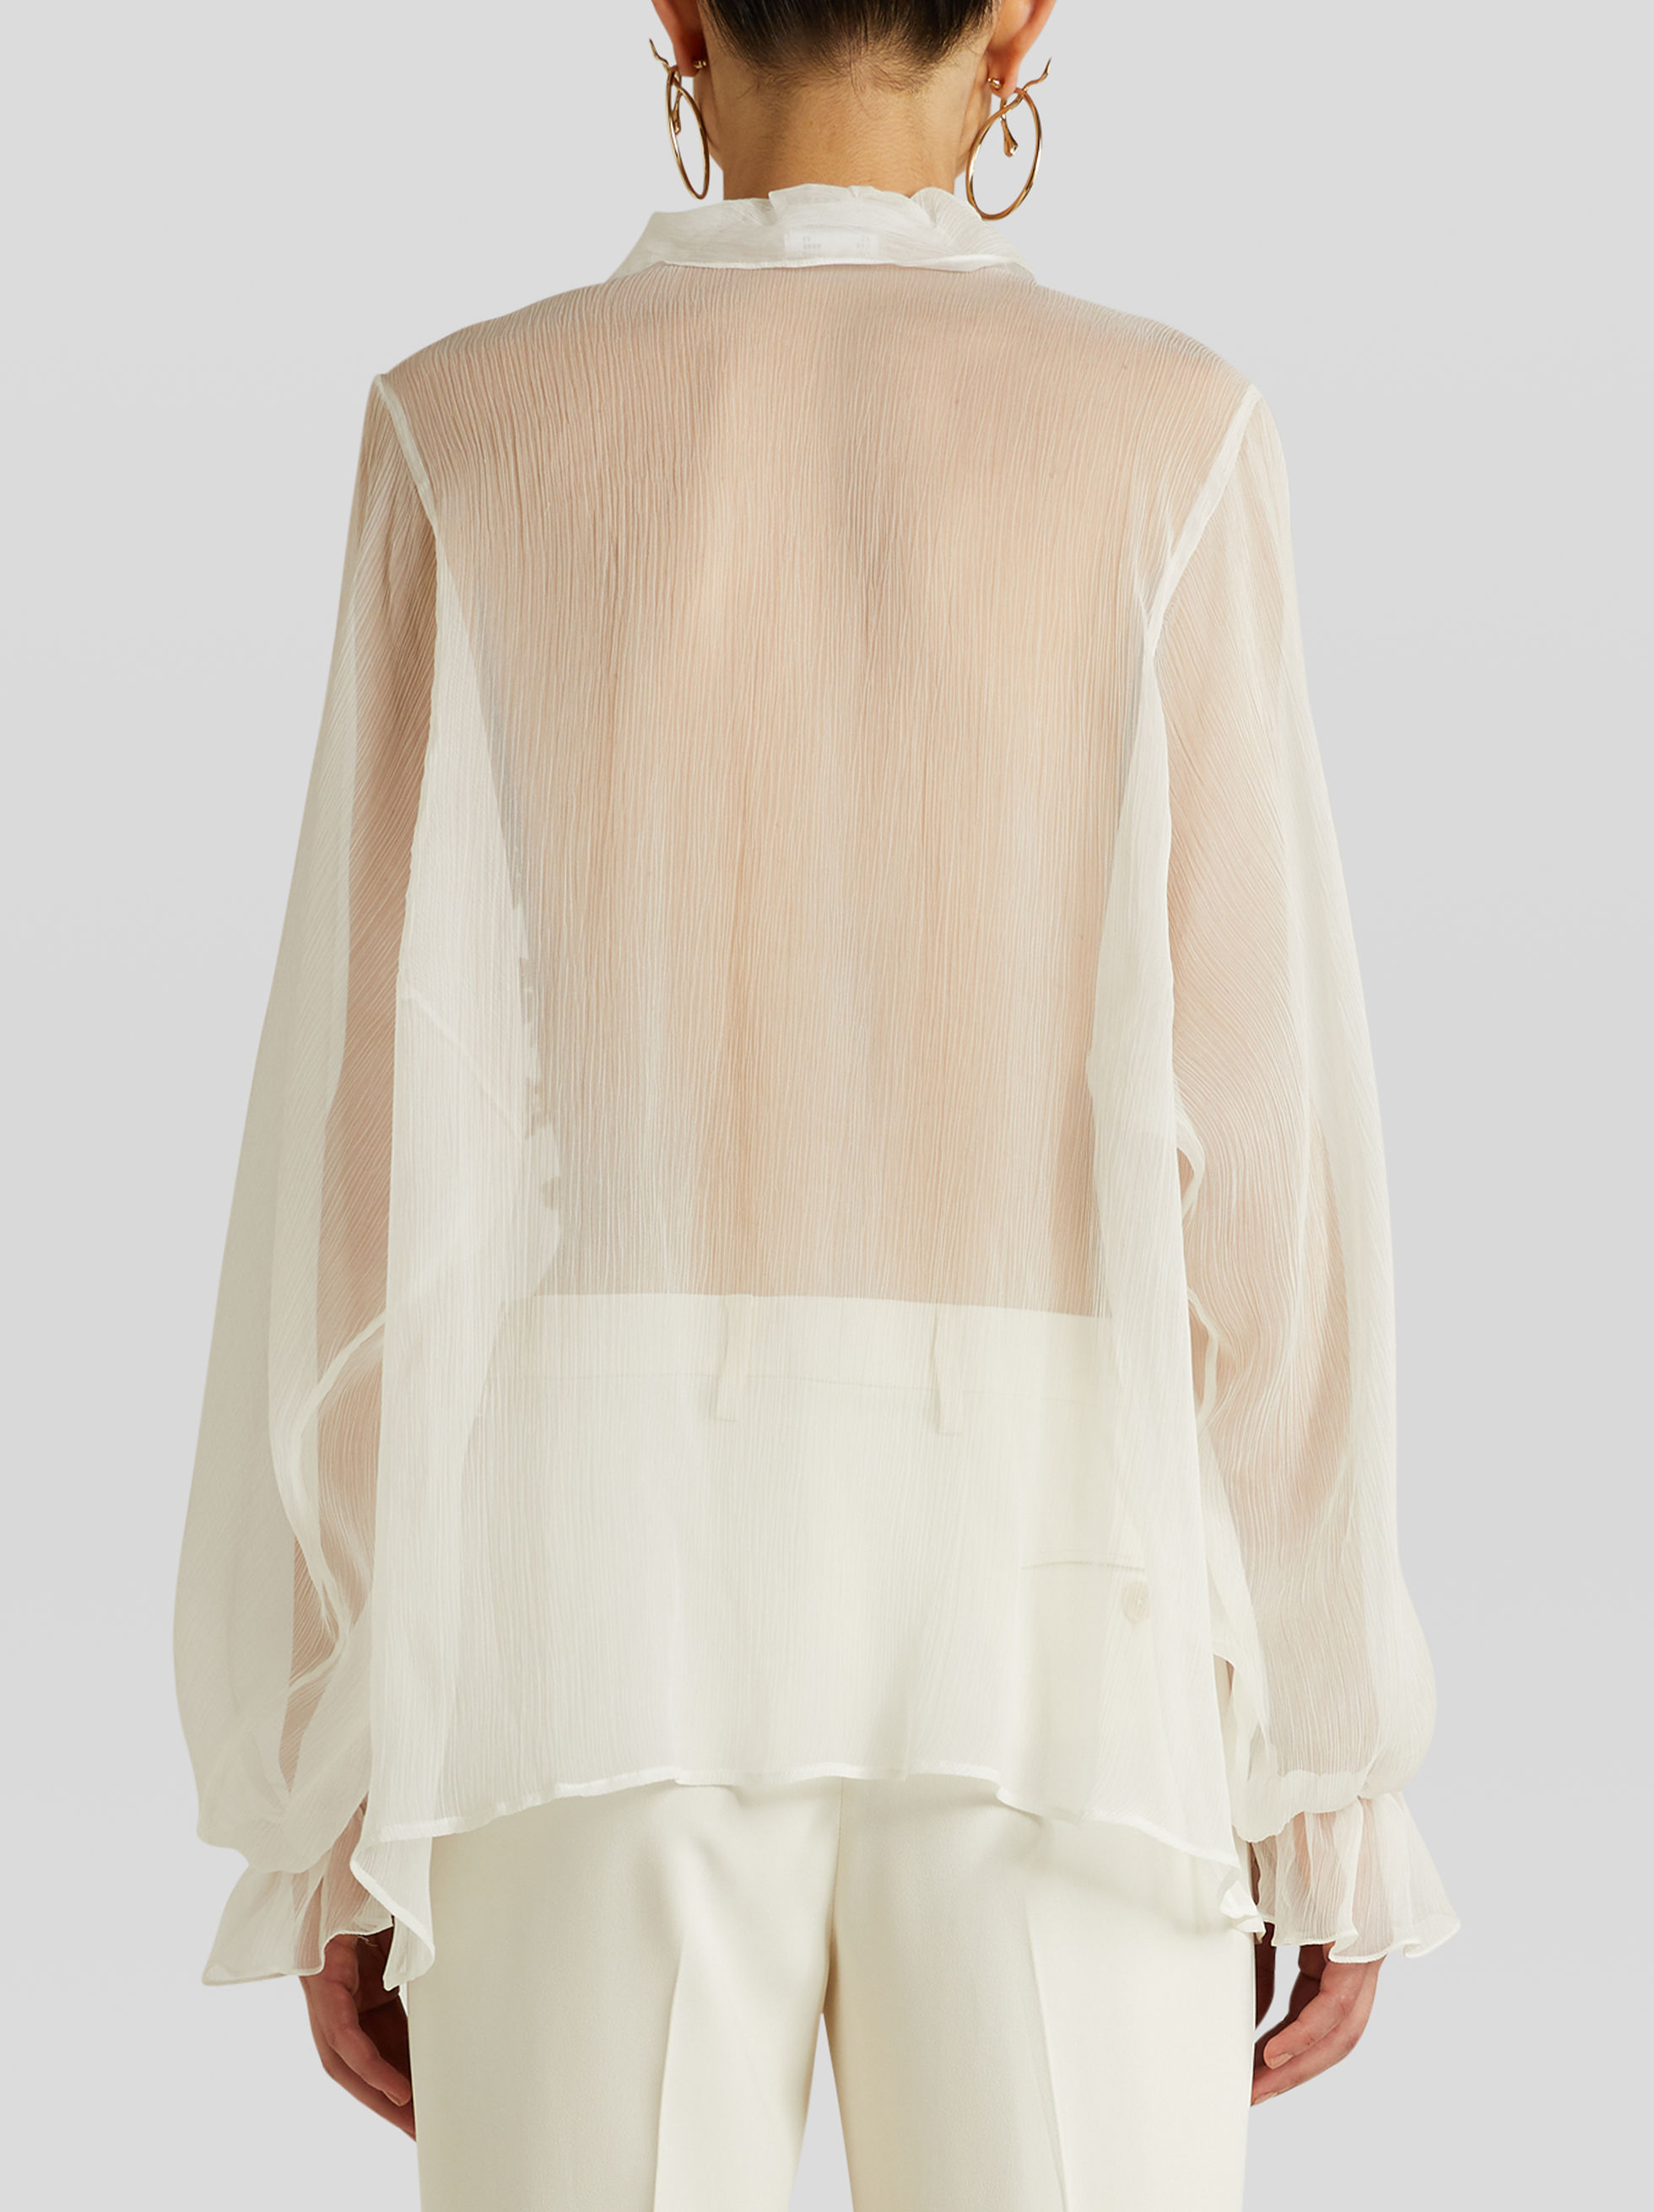 EMBROIDERED SILK SHIRT WITH RUCHES